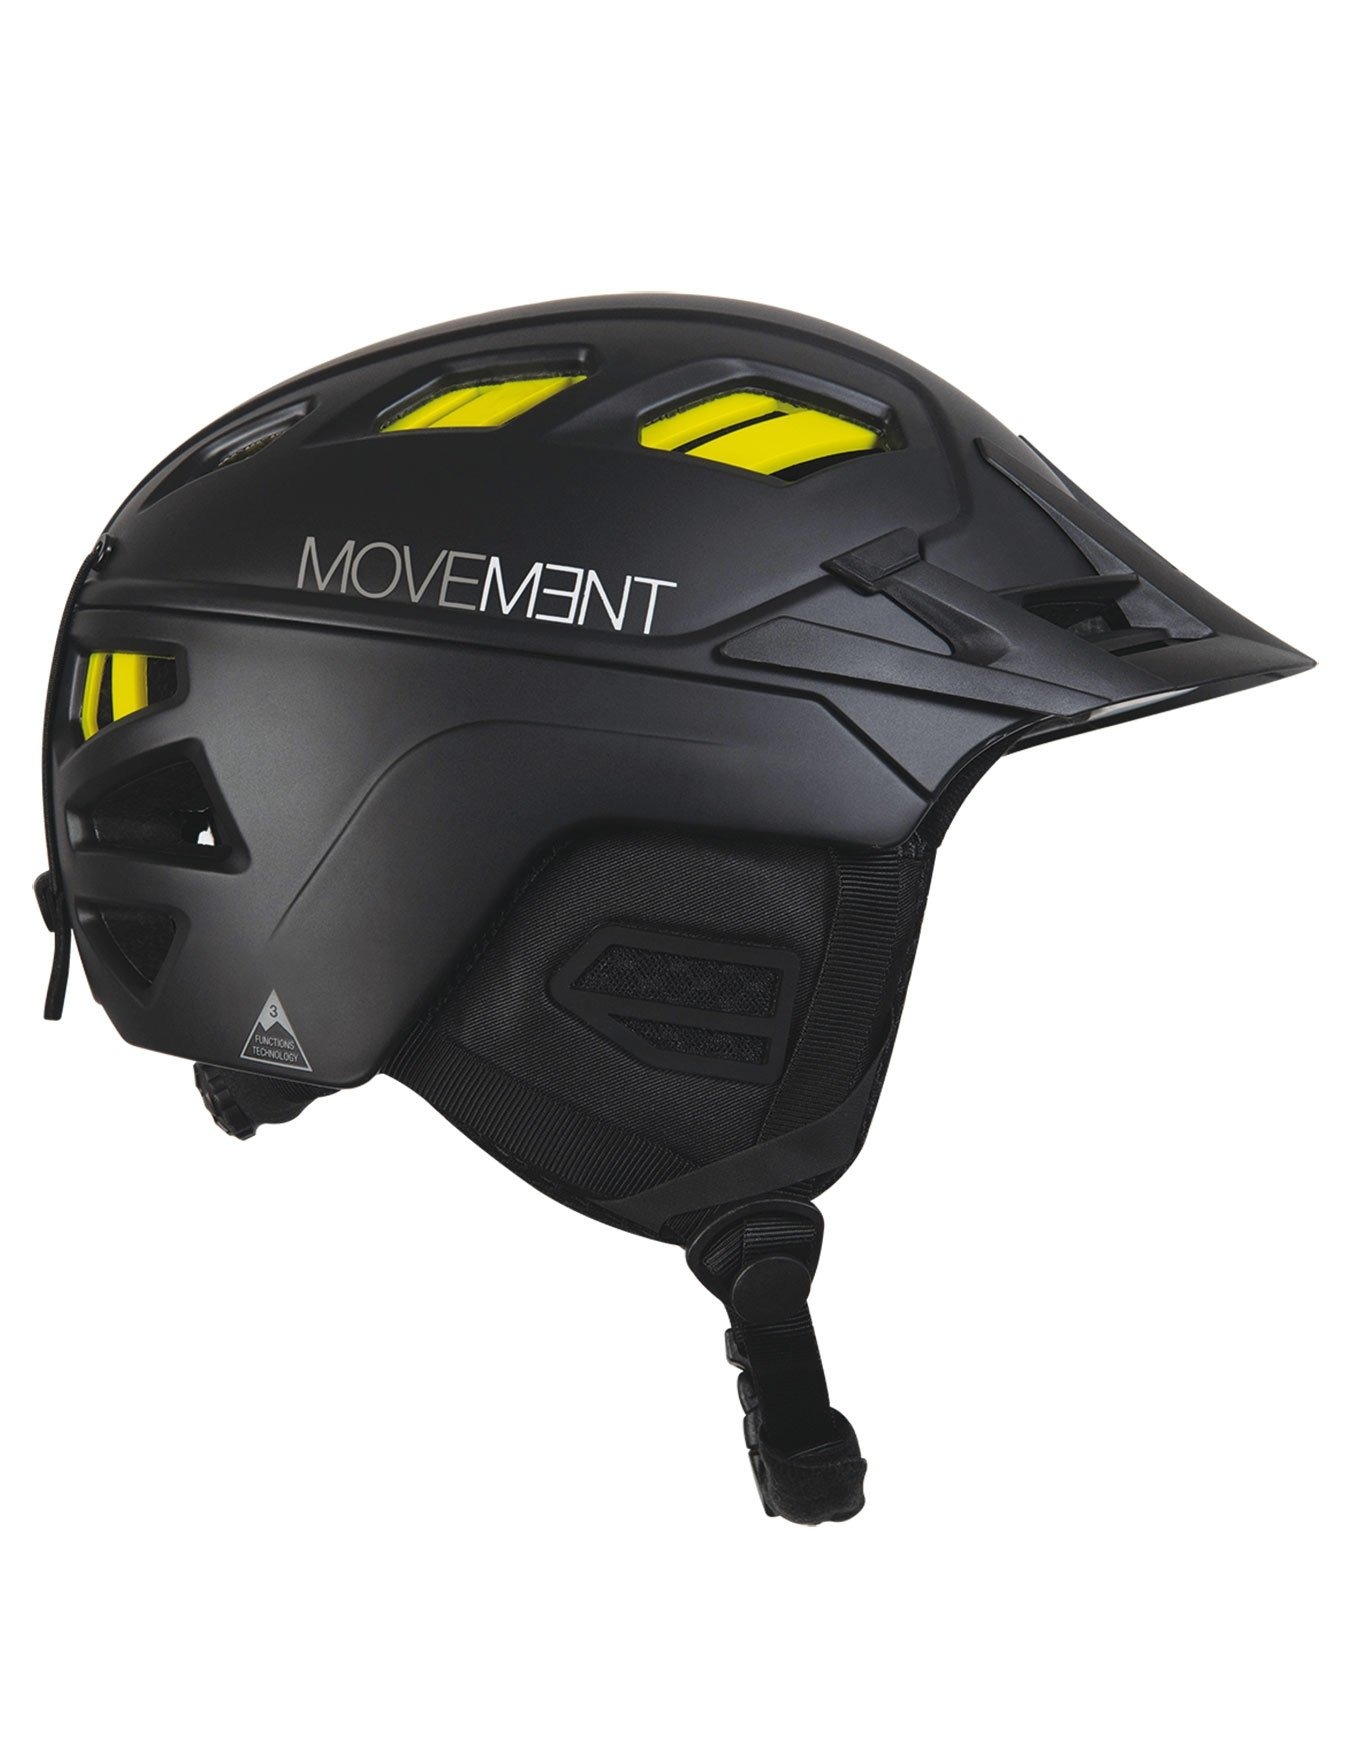 Casques MOVEMENT 3TECH FREERIDE